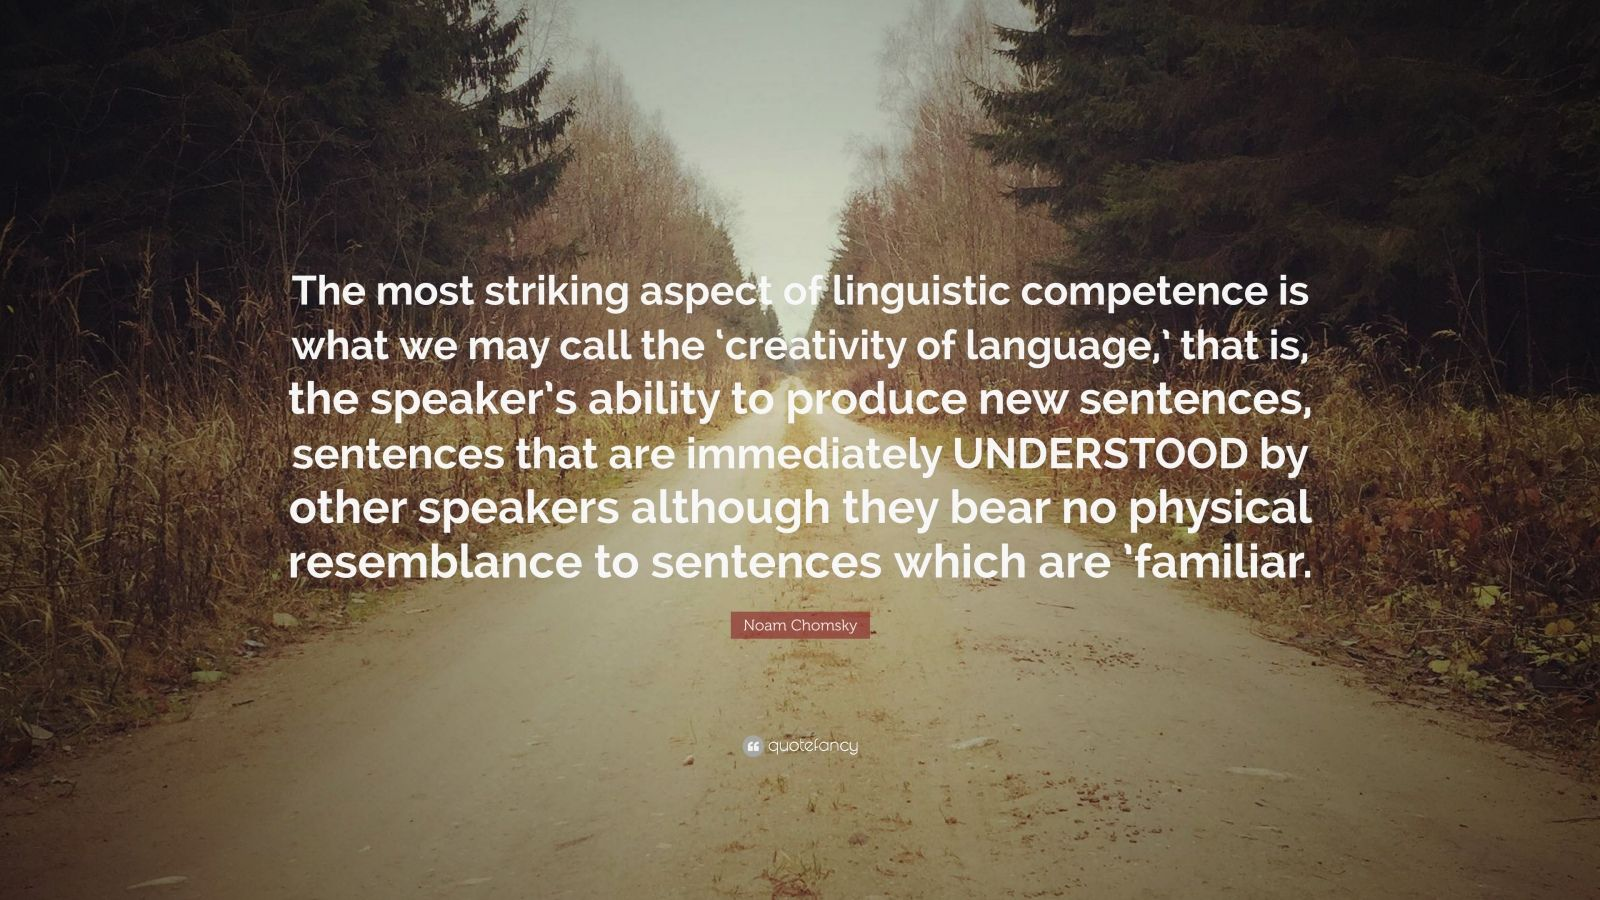 """Noam Chomsky Quote: """"The most striking aspect of linguistic competence is what we may call the 'creativity of language,' that is, the speaker's ability to produce new sentences, sentences that are immediately UNDERSTOOD by other speakers although they bear no physical resemblance to sentences which are 'familiar."""""""